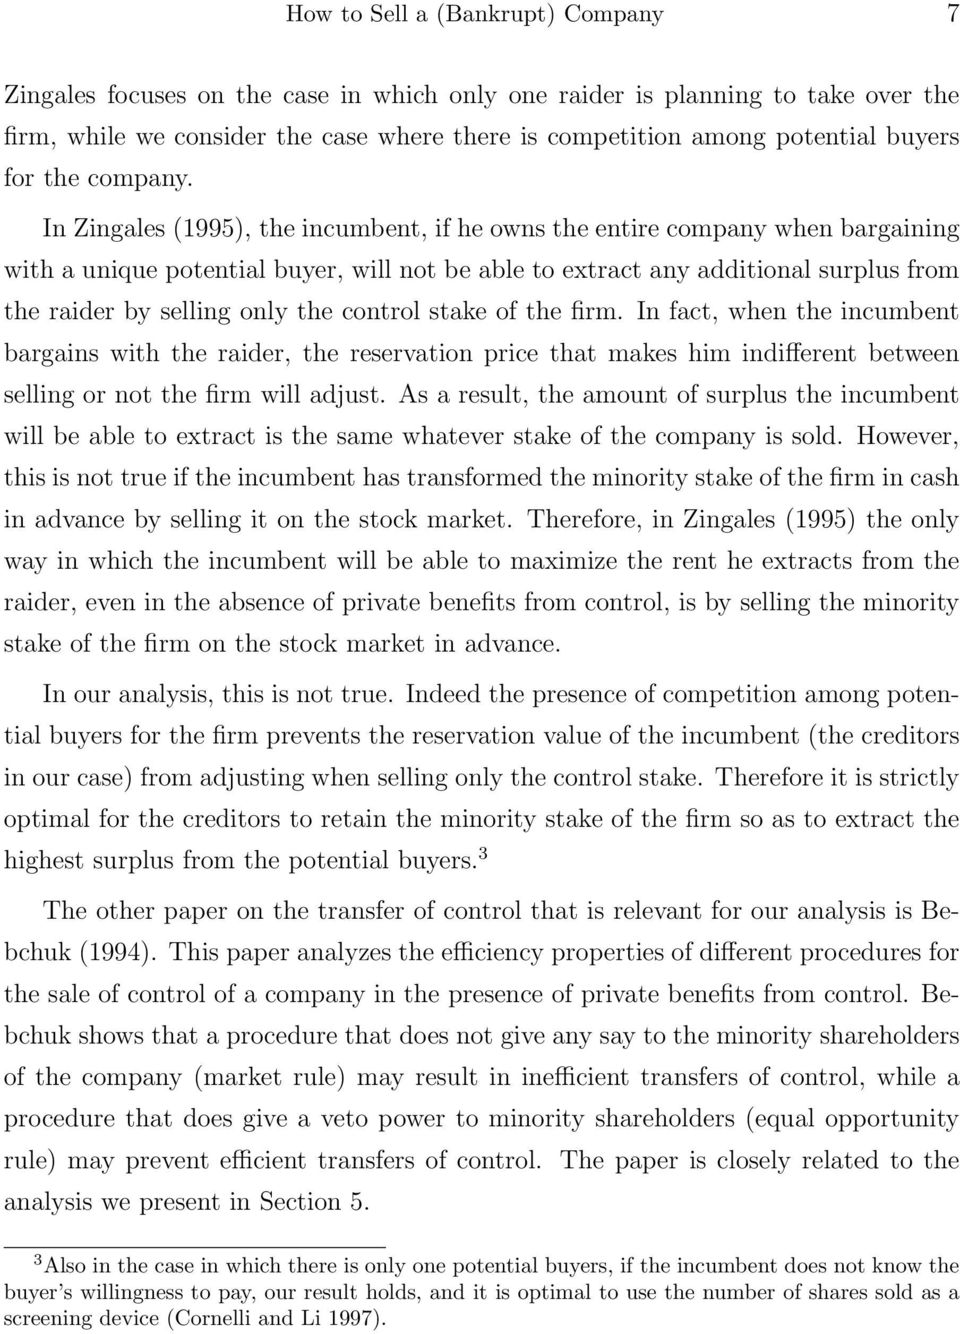 In Zingales (1995), the incumbent, if he owns the entire company when bargaining with a unique potential buyer, will not be able to extract any additional surplus from the raider by selling only the